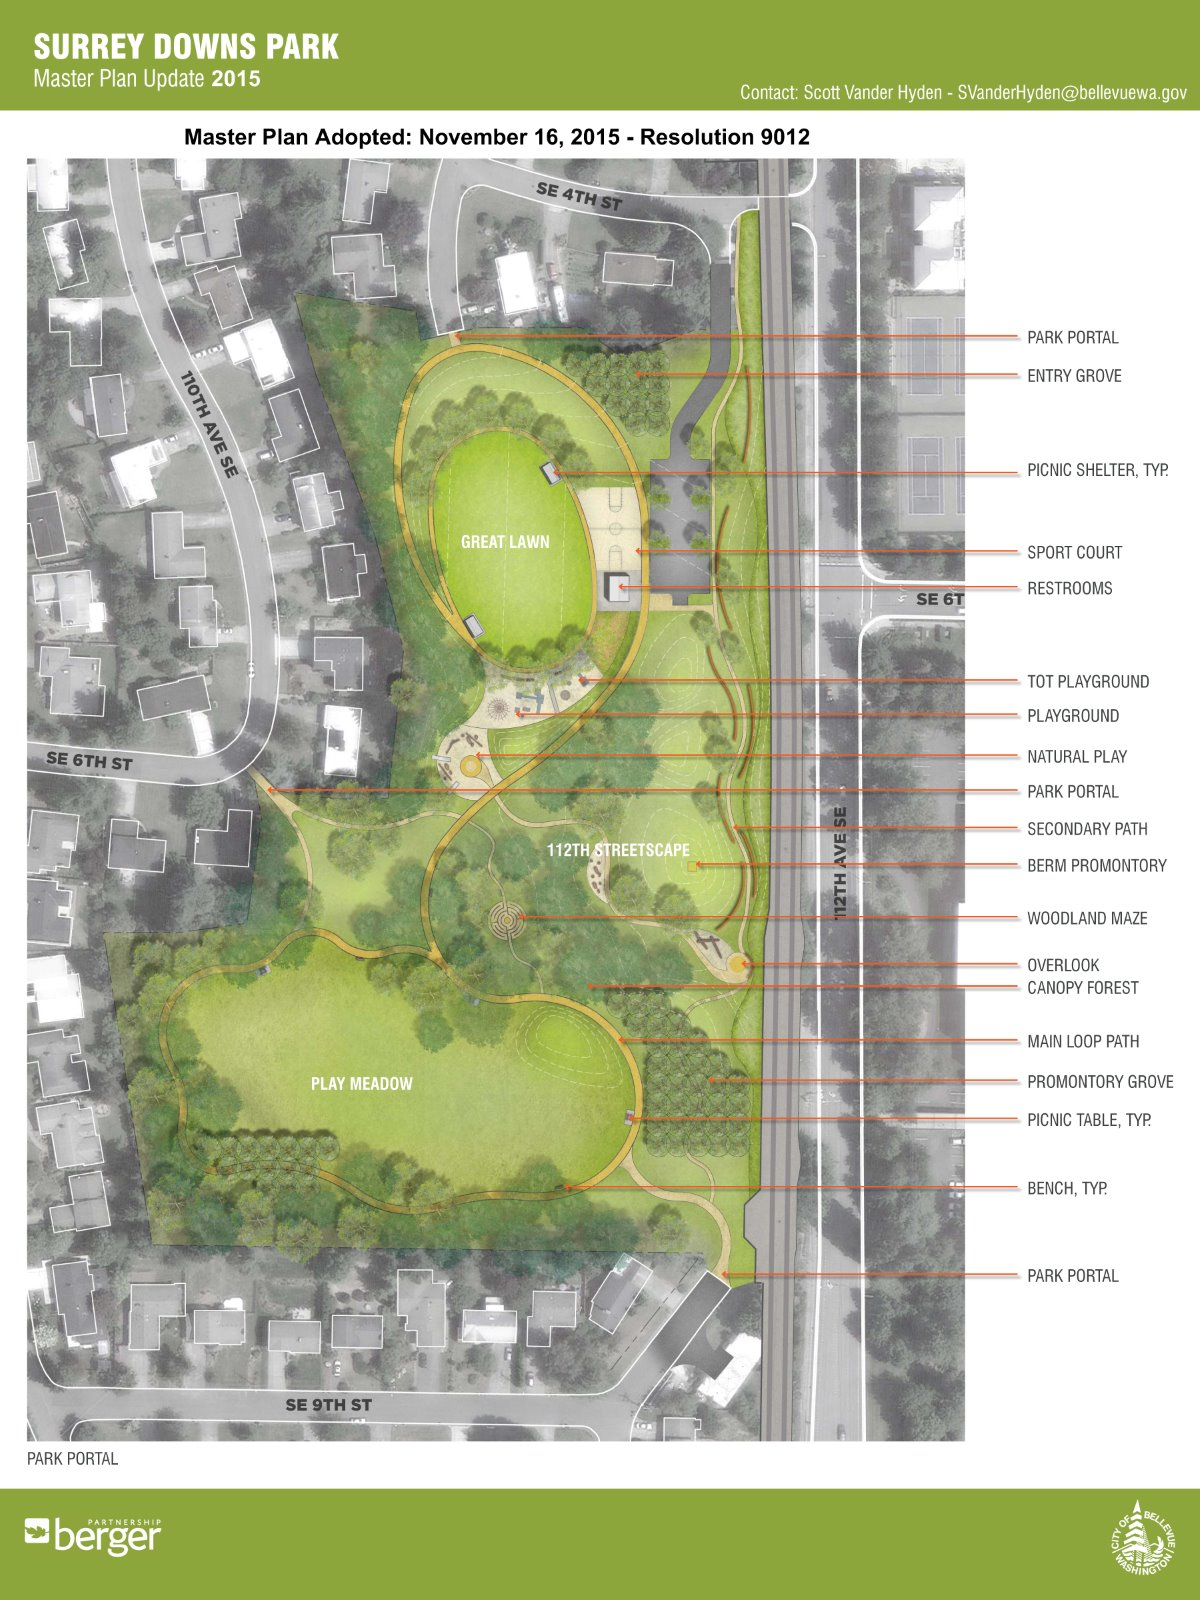 Surrey Downs Park Master Plan - see text below for descripti